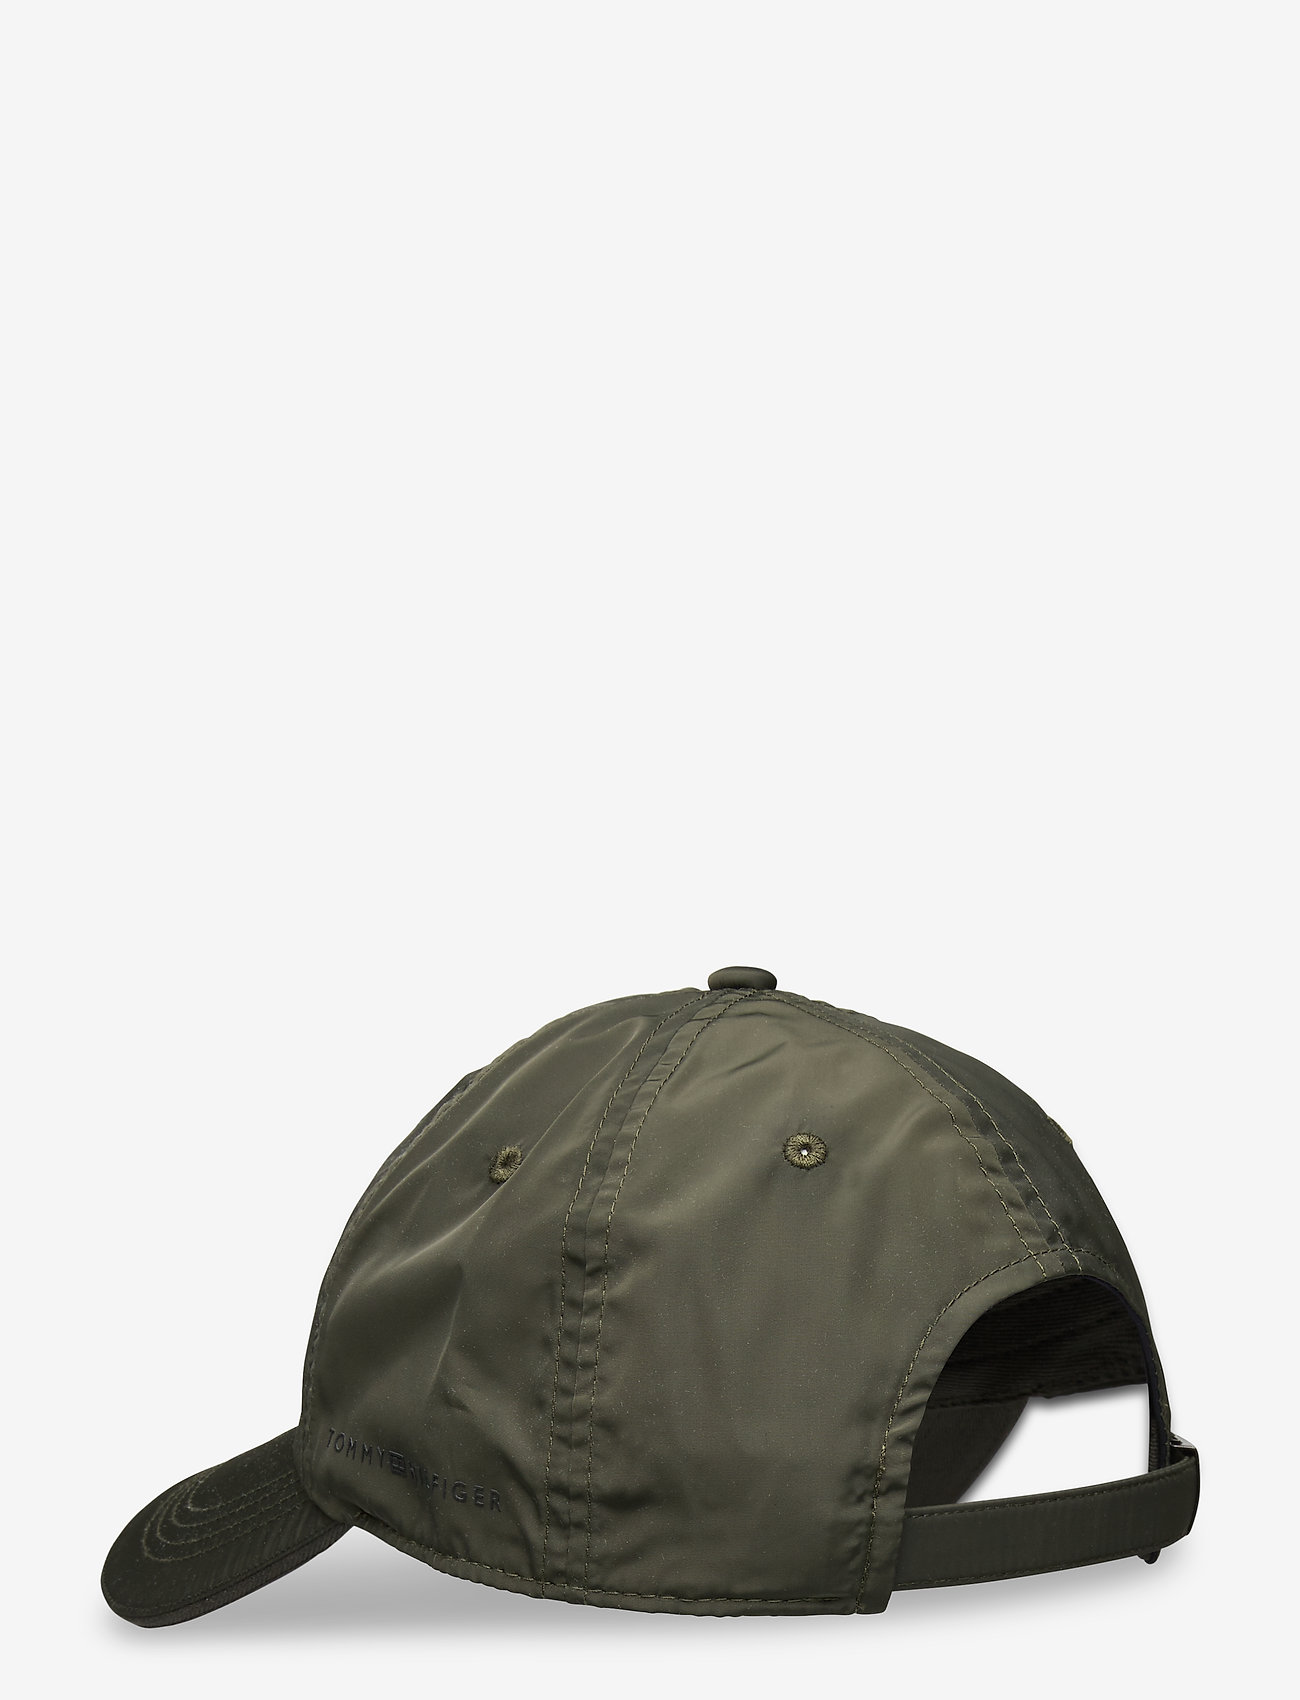 Tommy Hilfiger - TAILORED CAP NYLON - casquettes - grey sage - 1